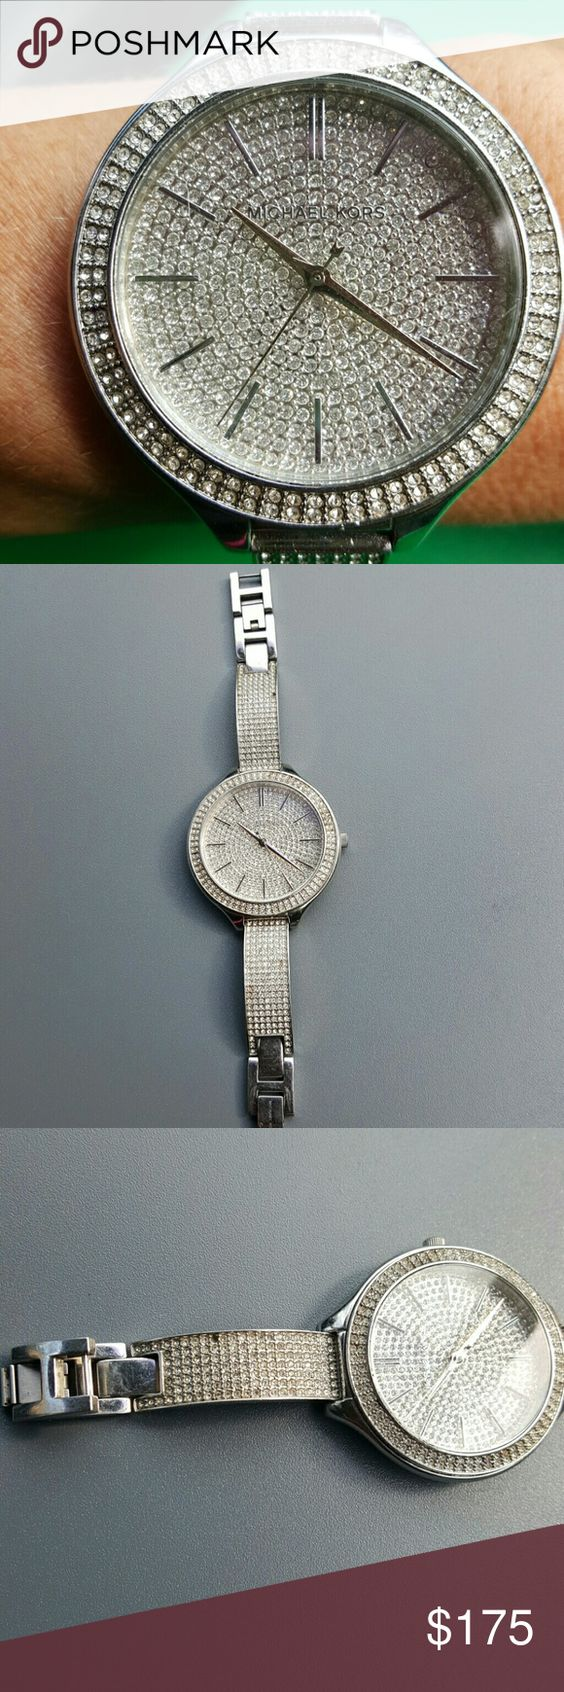 MICHAEL KORS RUNWAY SILVER BLING BIG FACE WATCH This is an authentic Michael Kors Runway silvertone bling rhinestone big face ladies watch. It is pre owned but still in excellent condition. It is missing rhinestone please see picture 3. Nothing that's really noticeable I just did want to mention it Michael Kors Accessories Watches